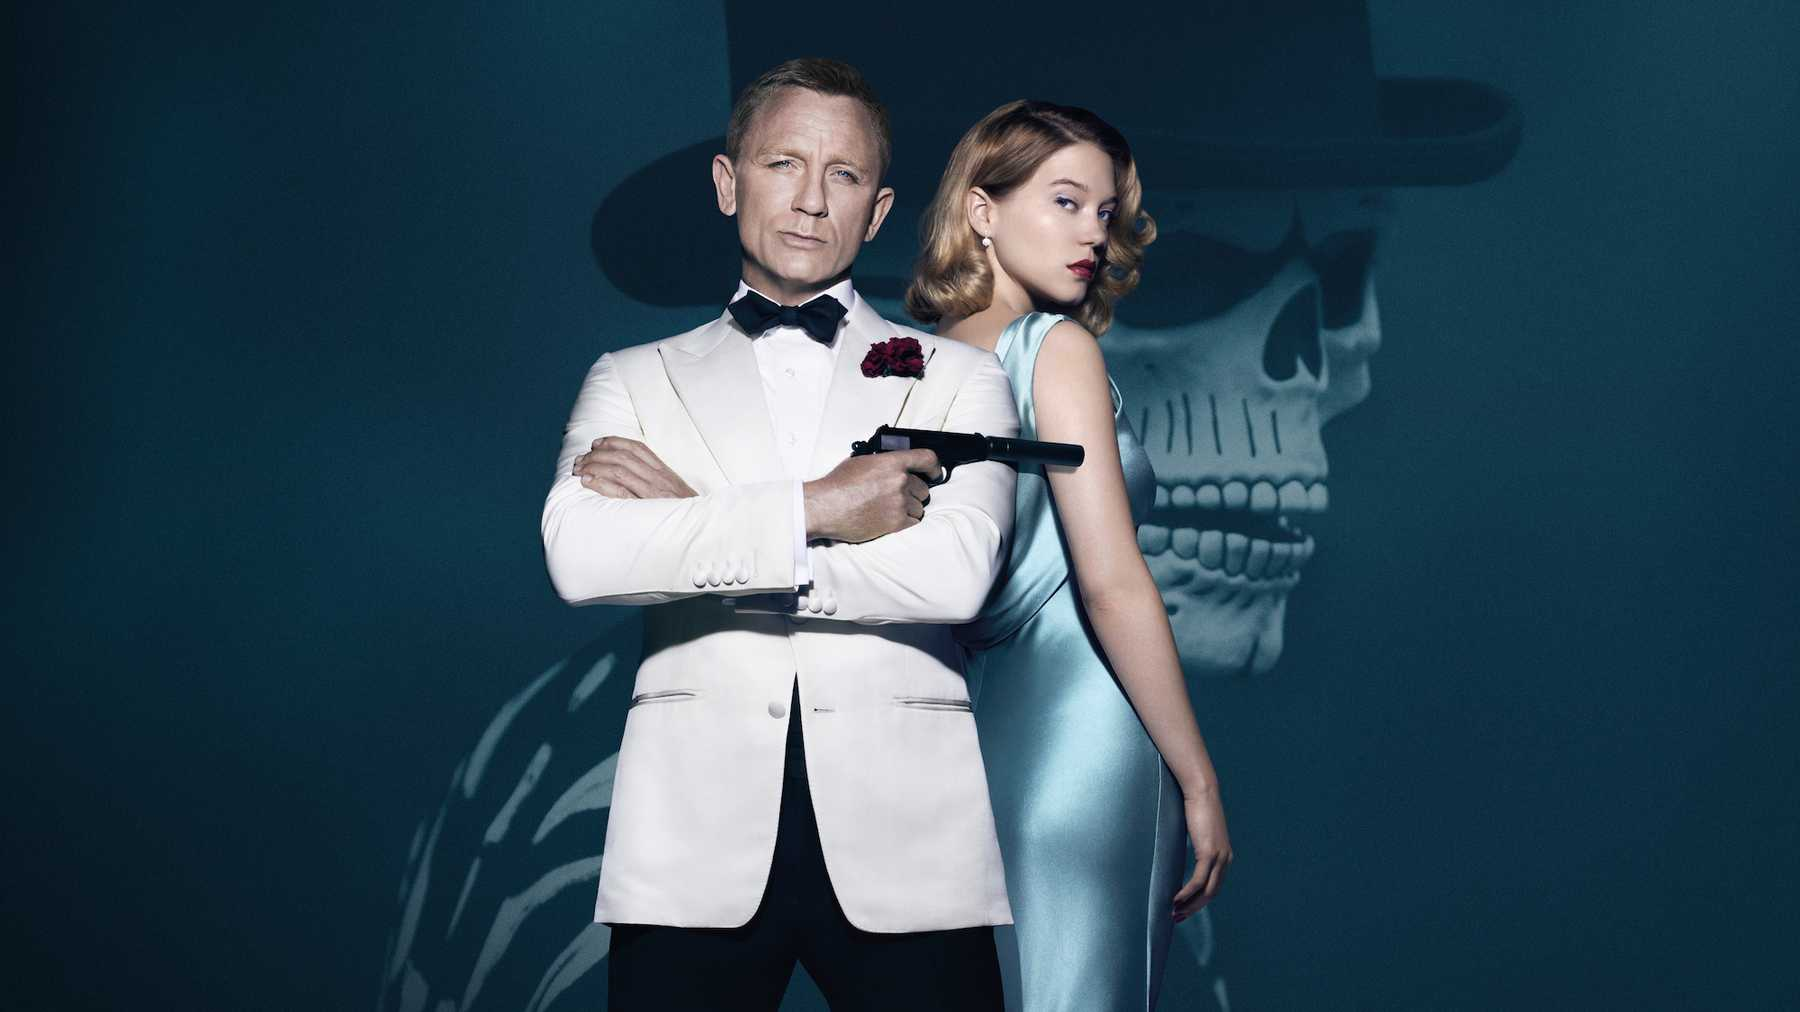 James Bond No Time to Die UK premiere April 2020 James Bond film premiere tickets VIP London film premieres